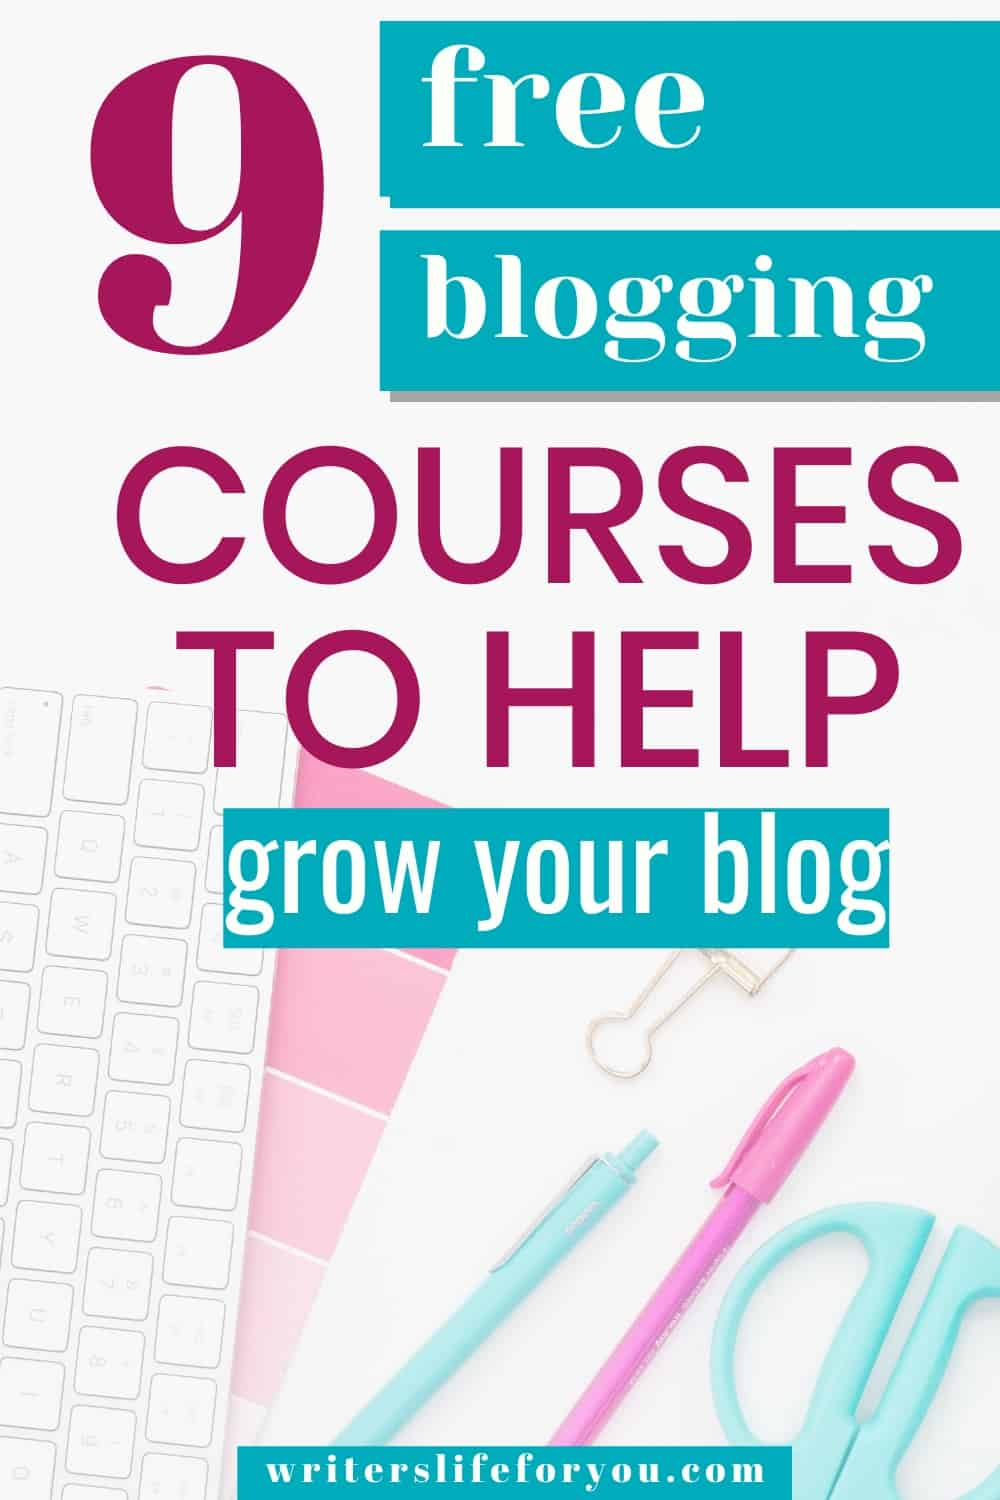 9 Outstanding Free Courses to Help Grow Your Blog And Make More Money